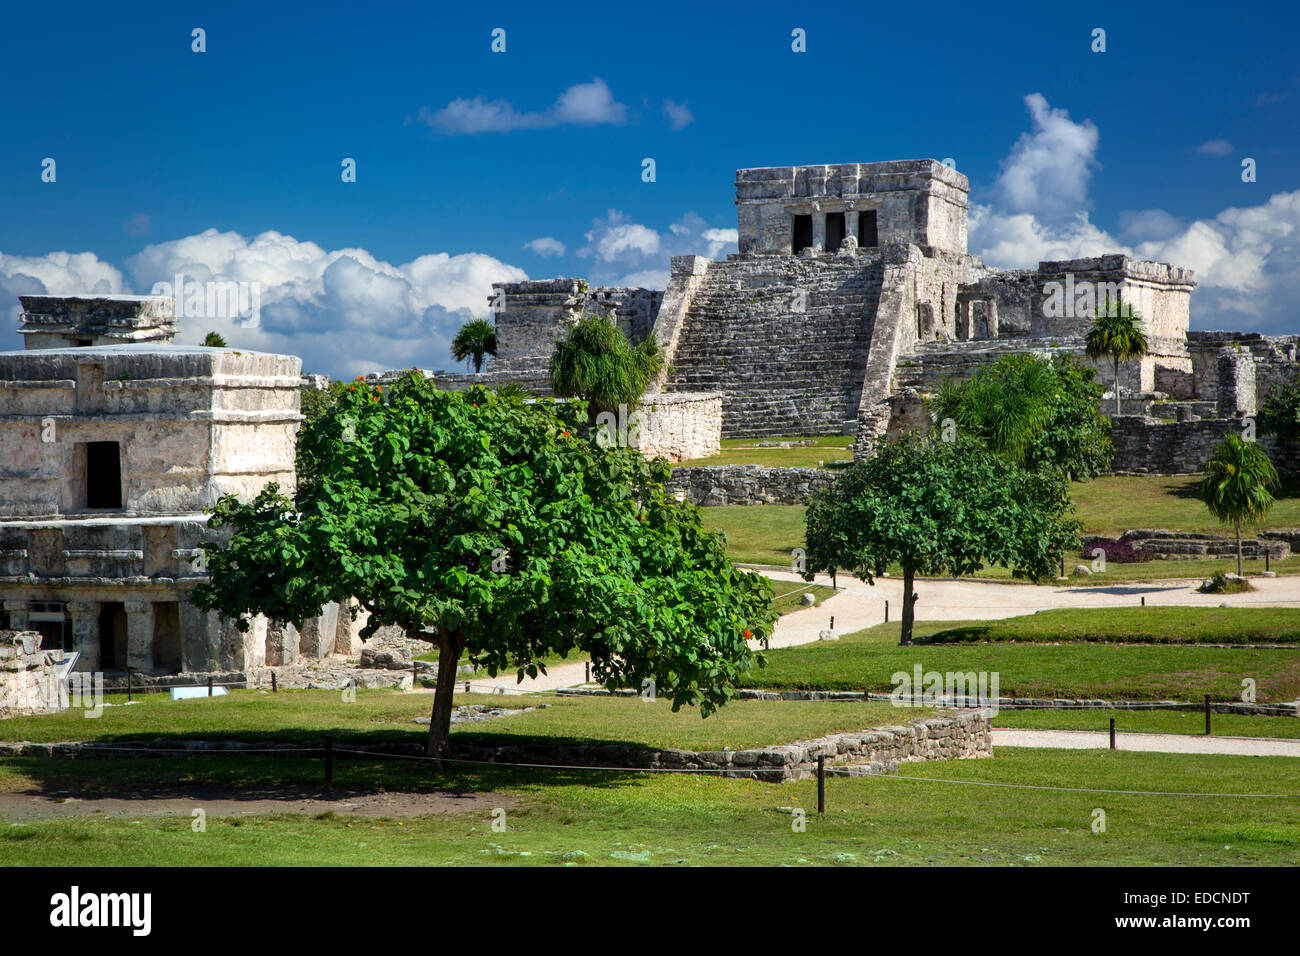 Ruins of the Mayan temple grounds at Tulum, Quintana Roo, Yucatan, Mexico - Stock Image